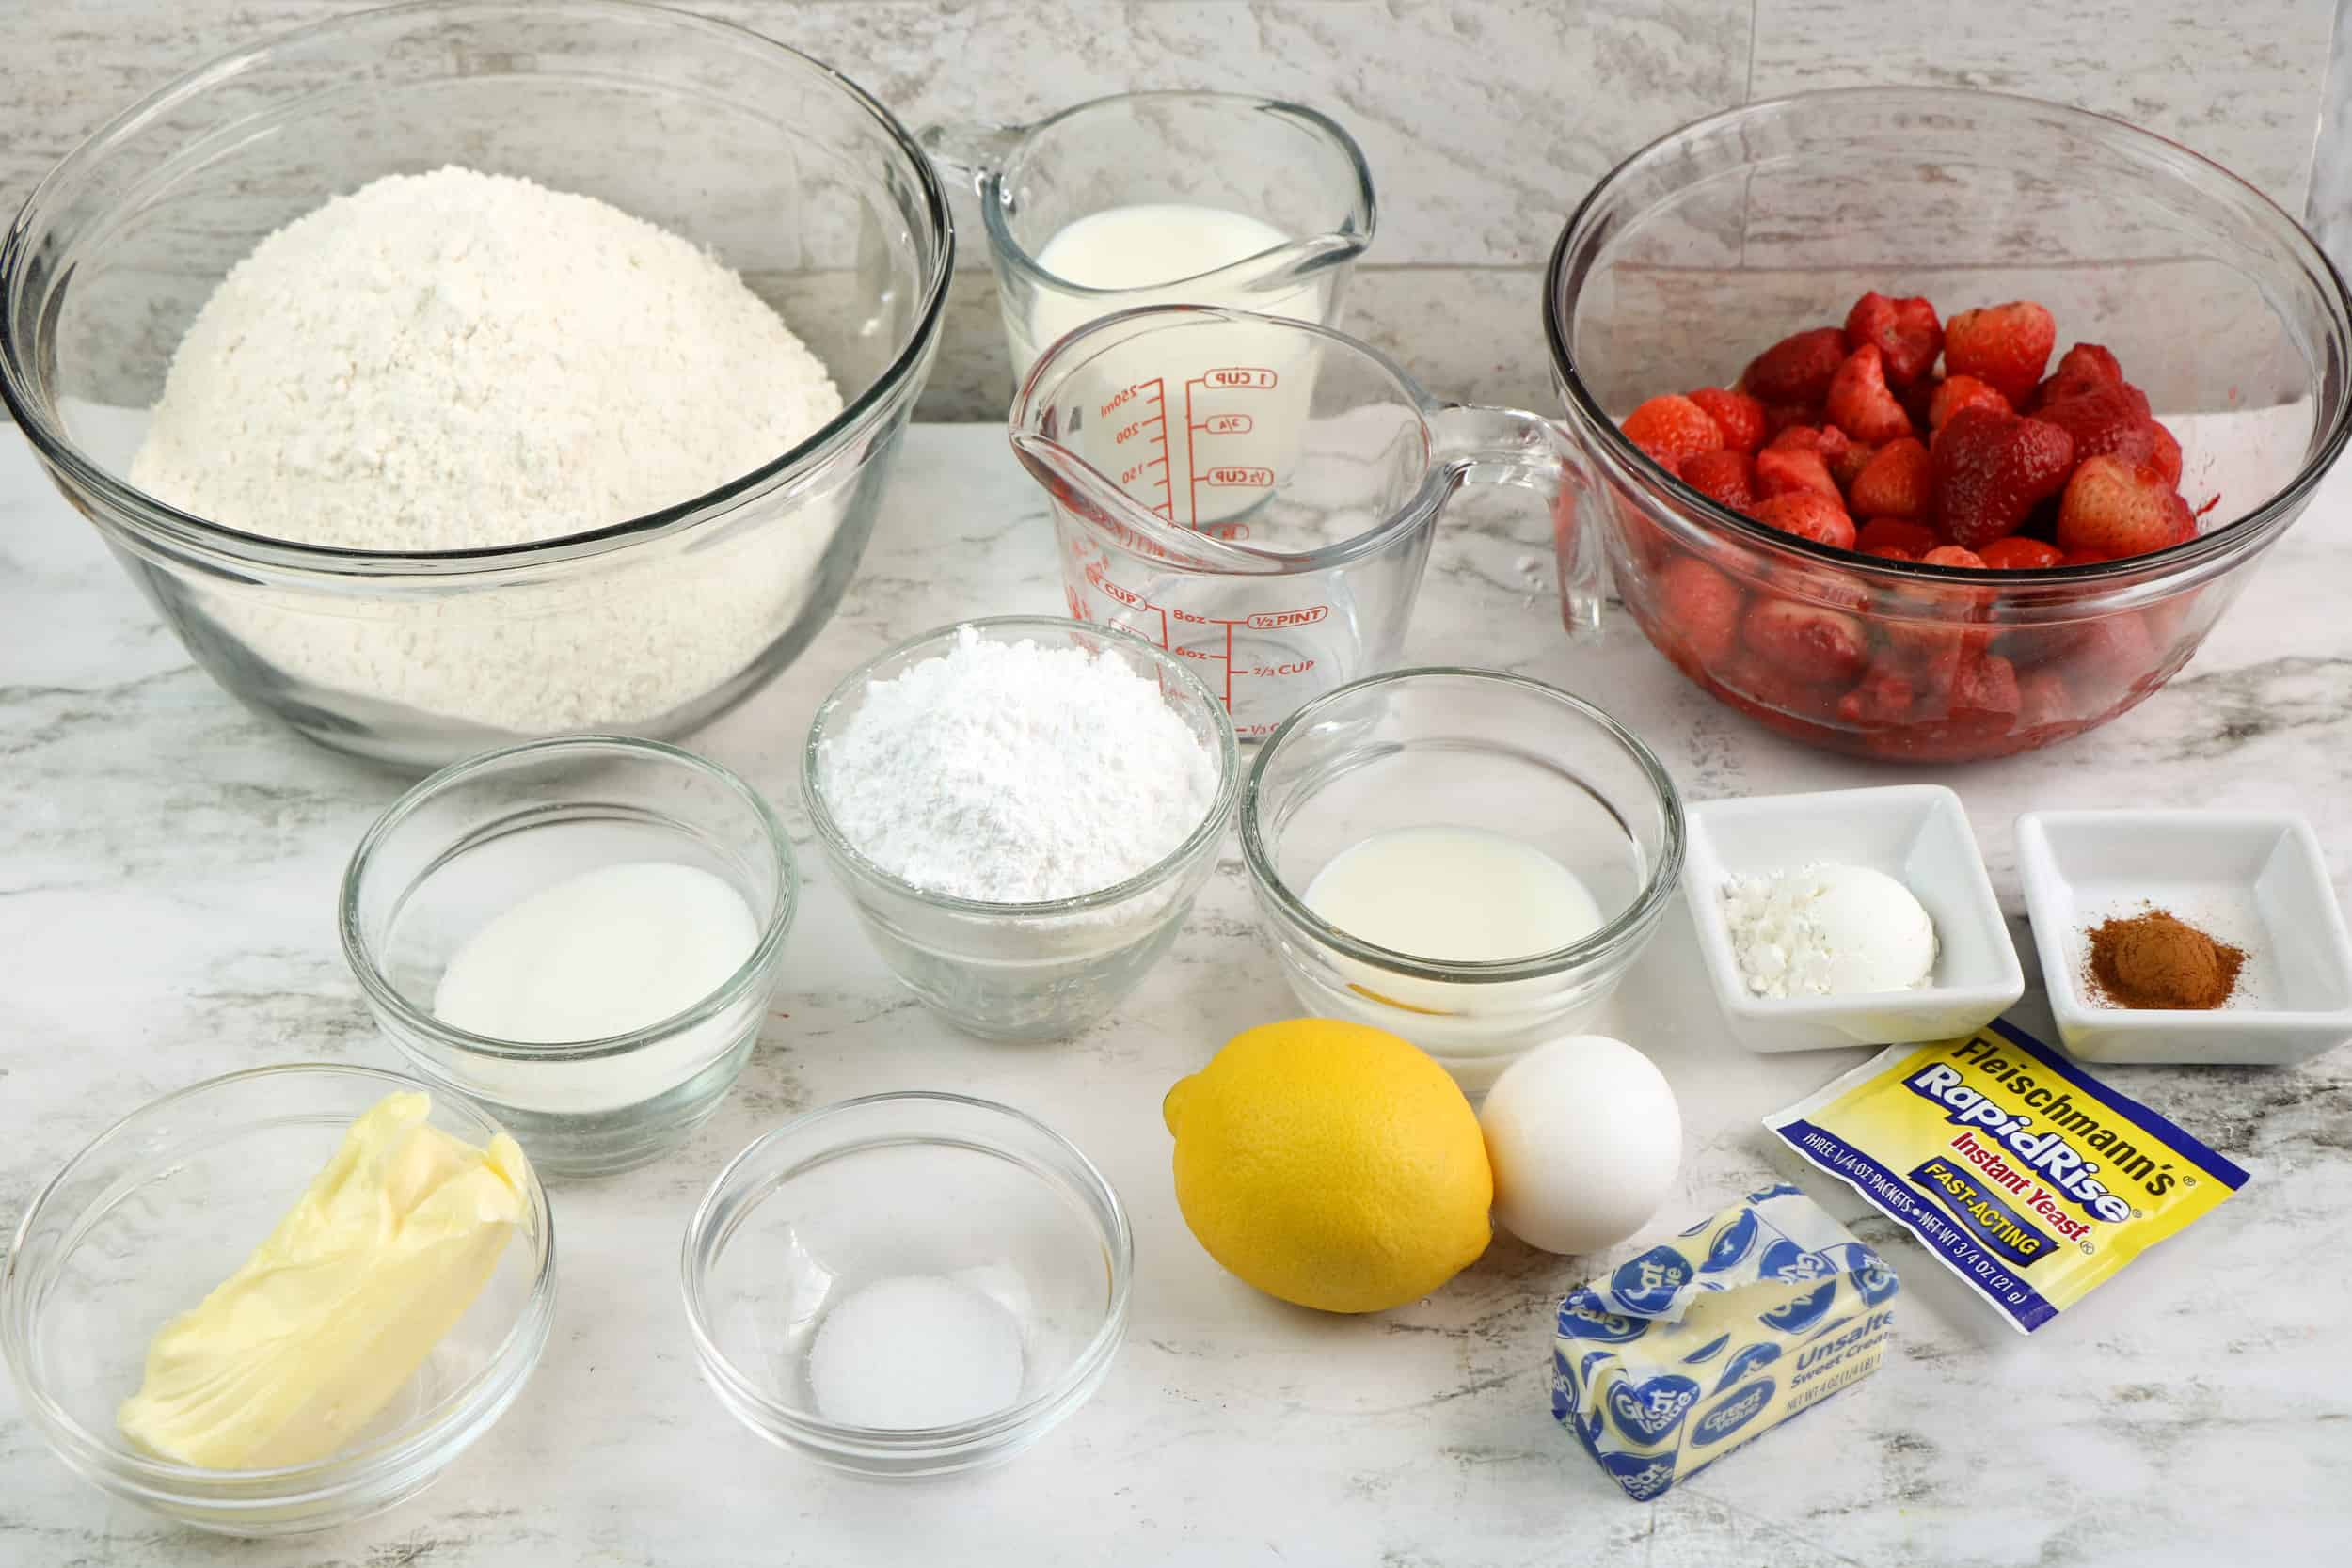 ingredients for strawberry cinnamon rolls